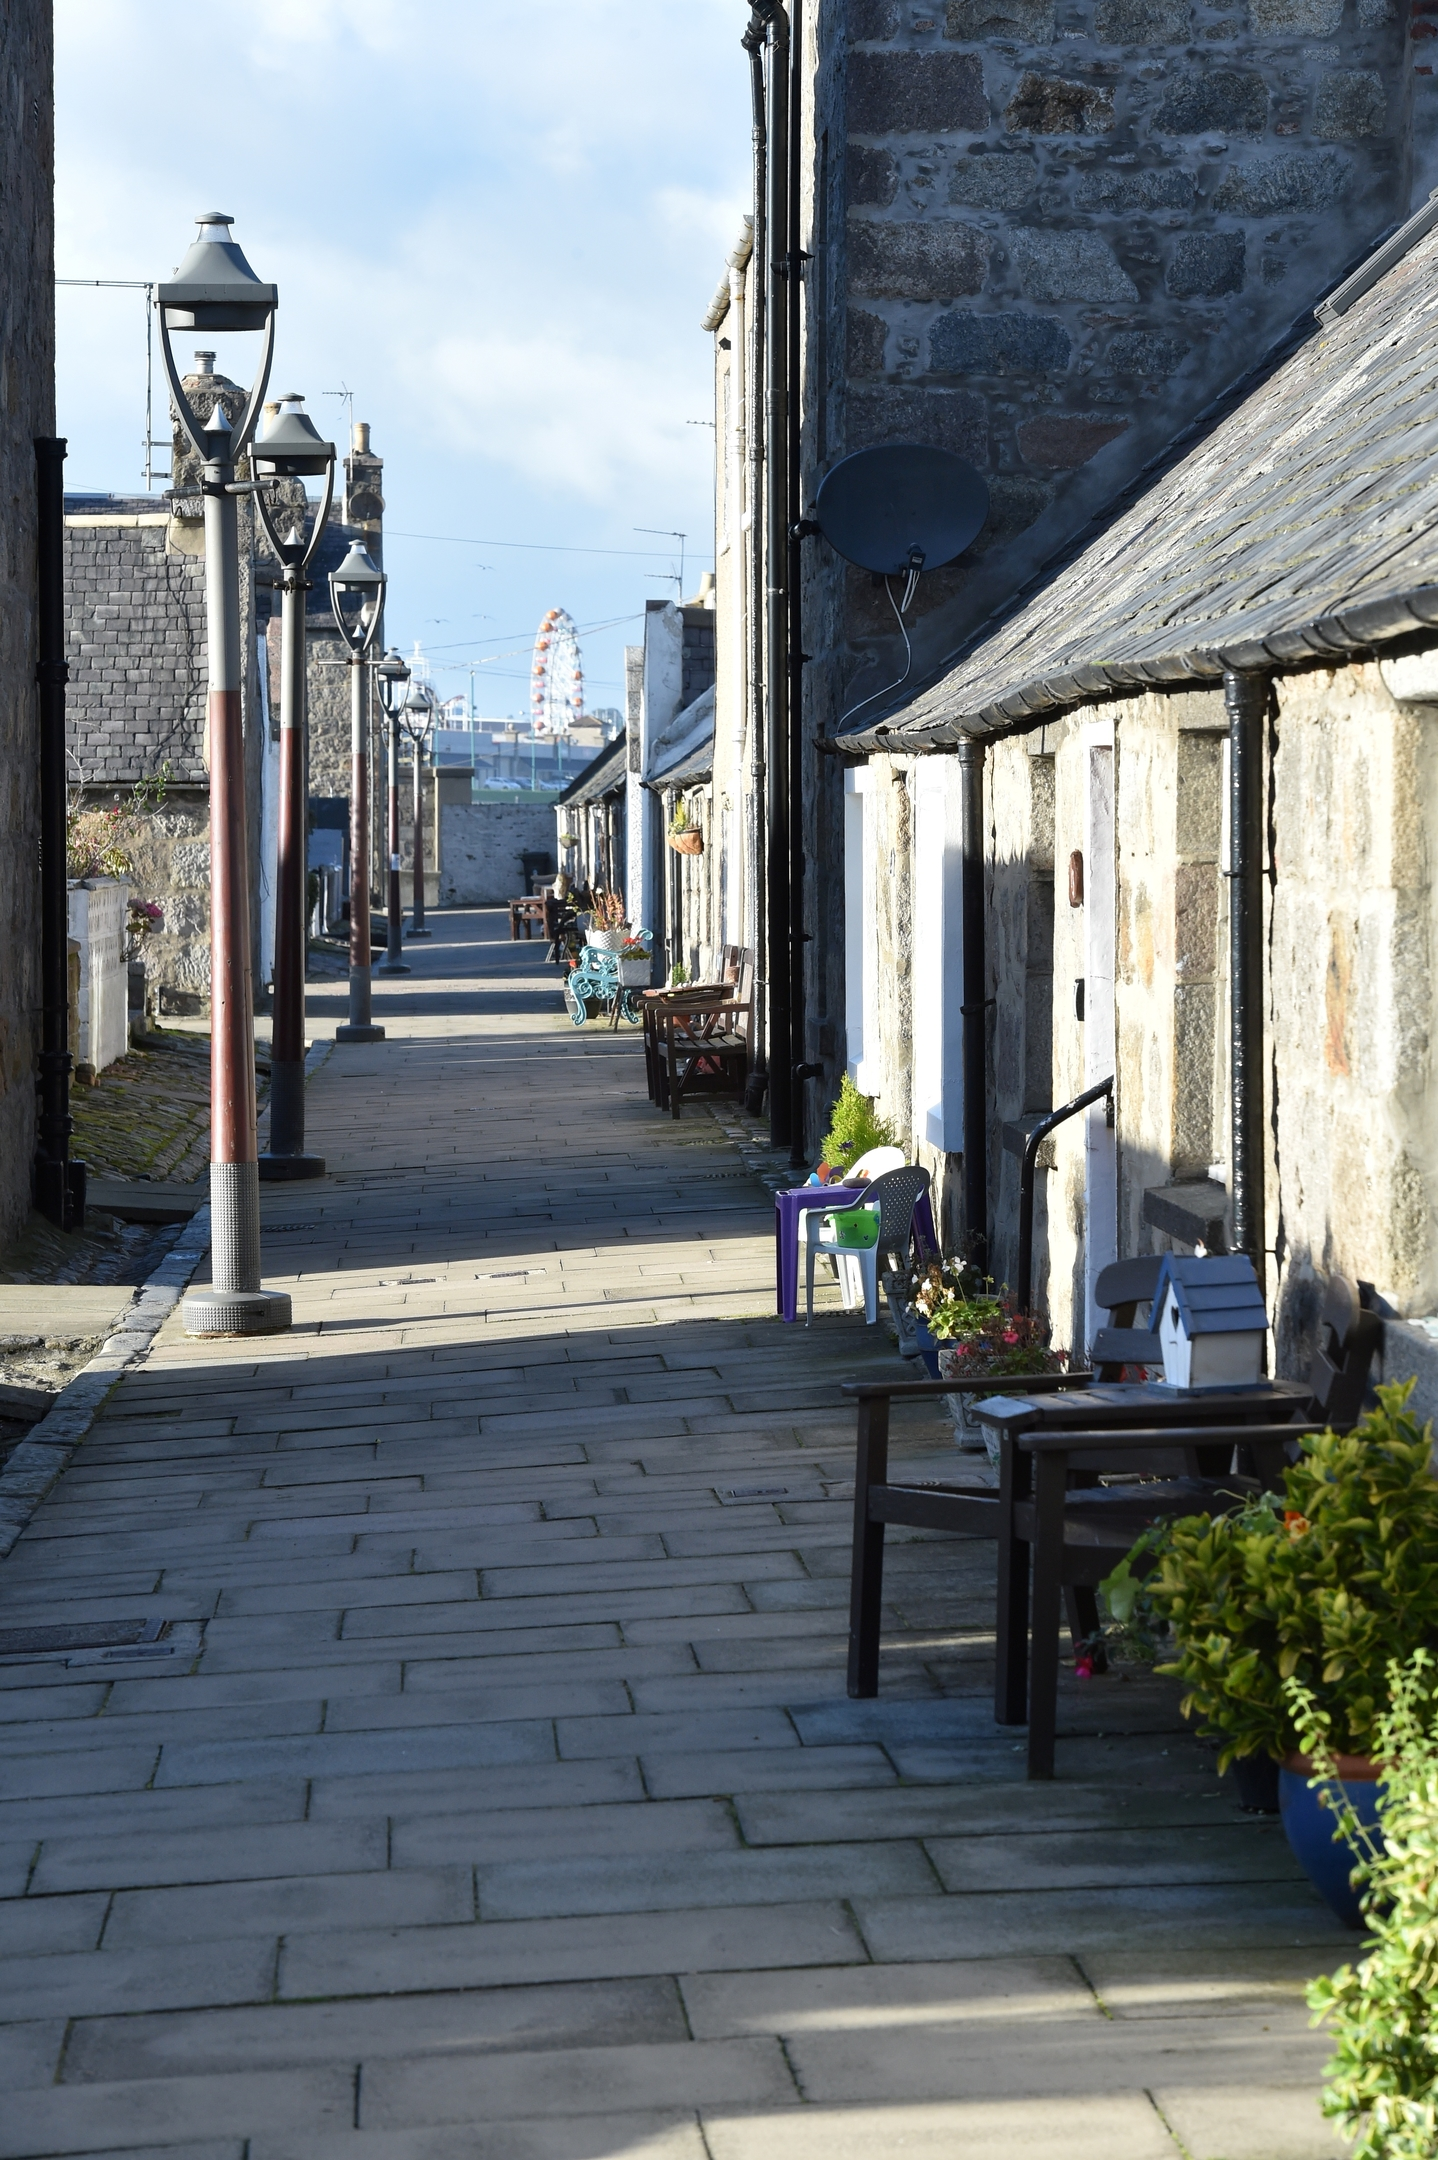 Footdee is a particularly interesting example of a planned housing development purpose-built to re-house Aberdeen's local fishing community